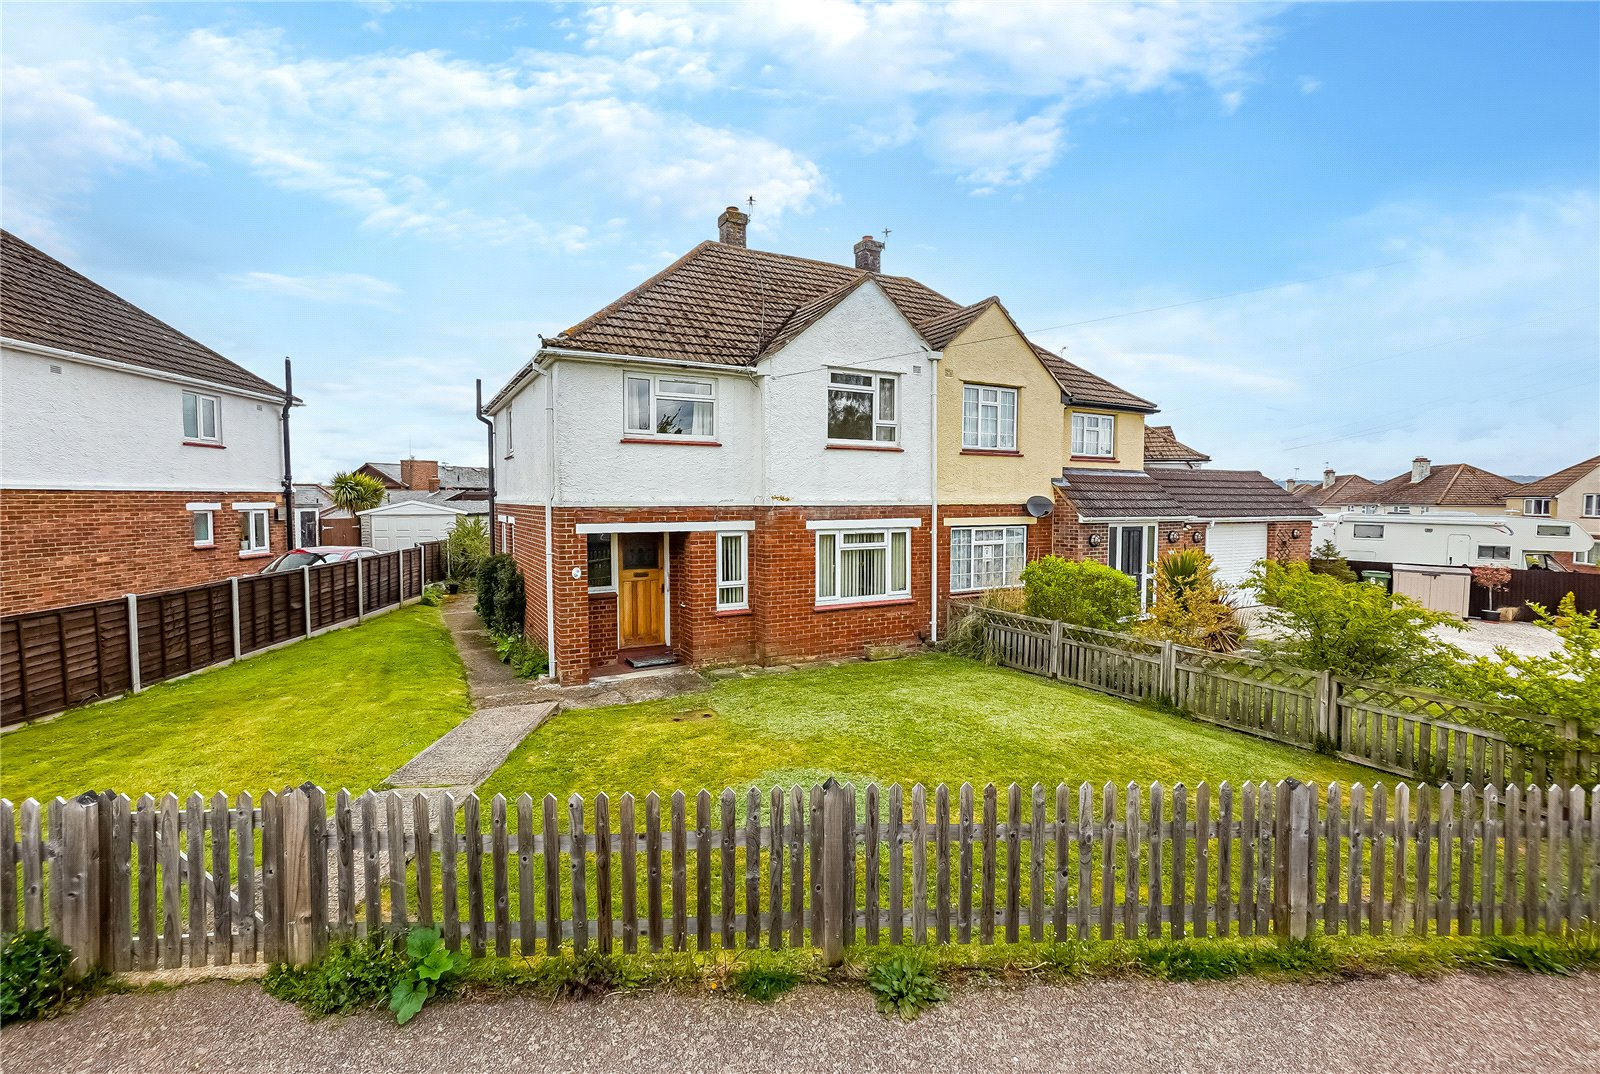 3 bed house for sale in Norfolk Road, Maidstone, ME15